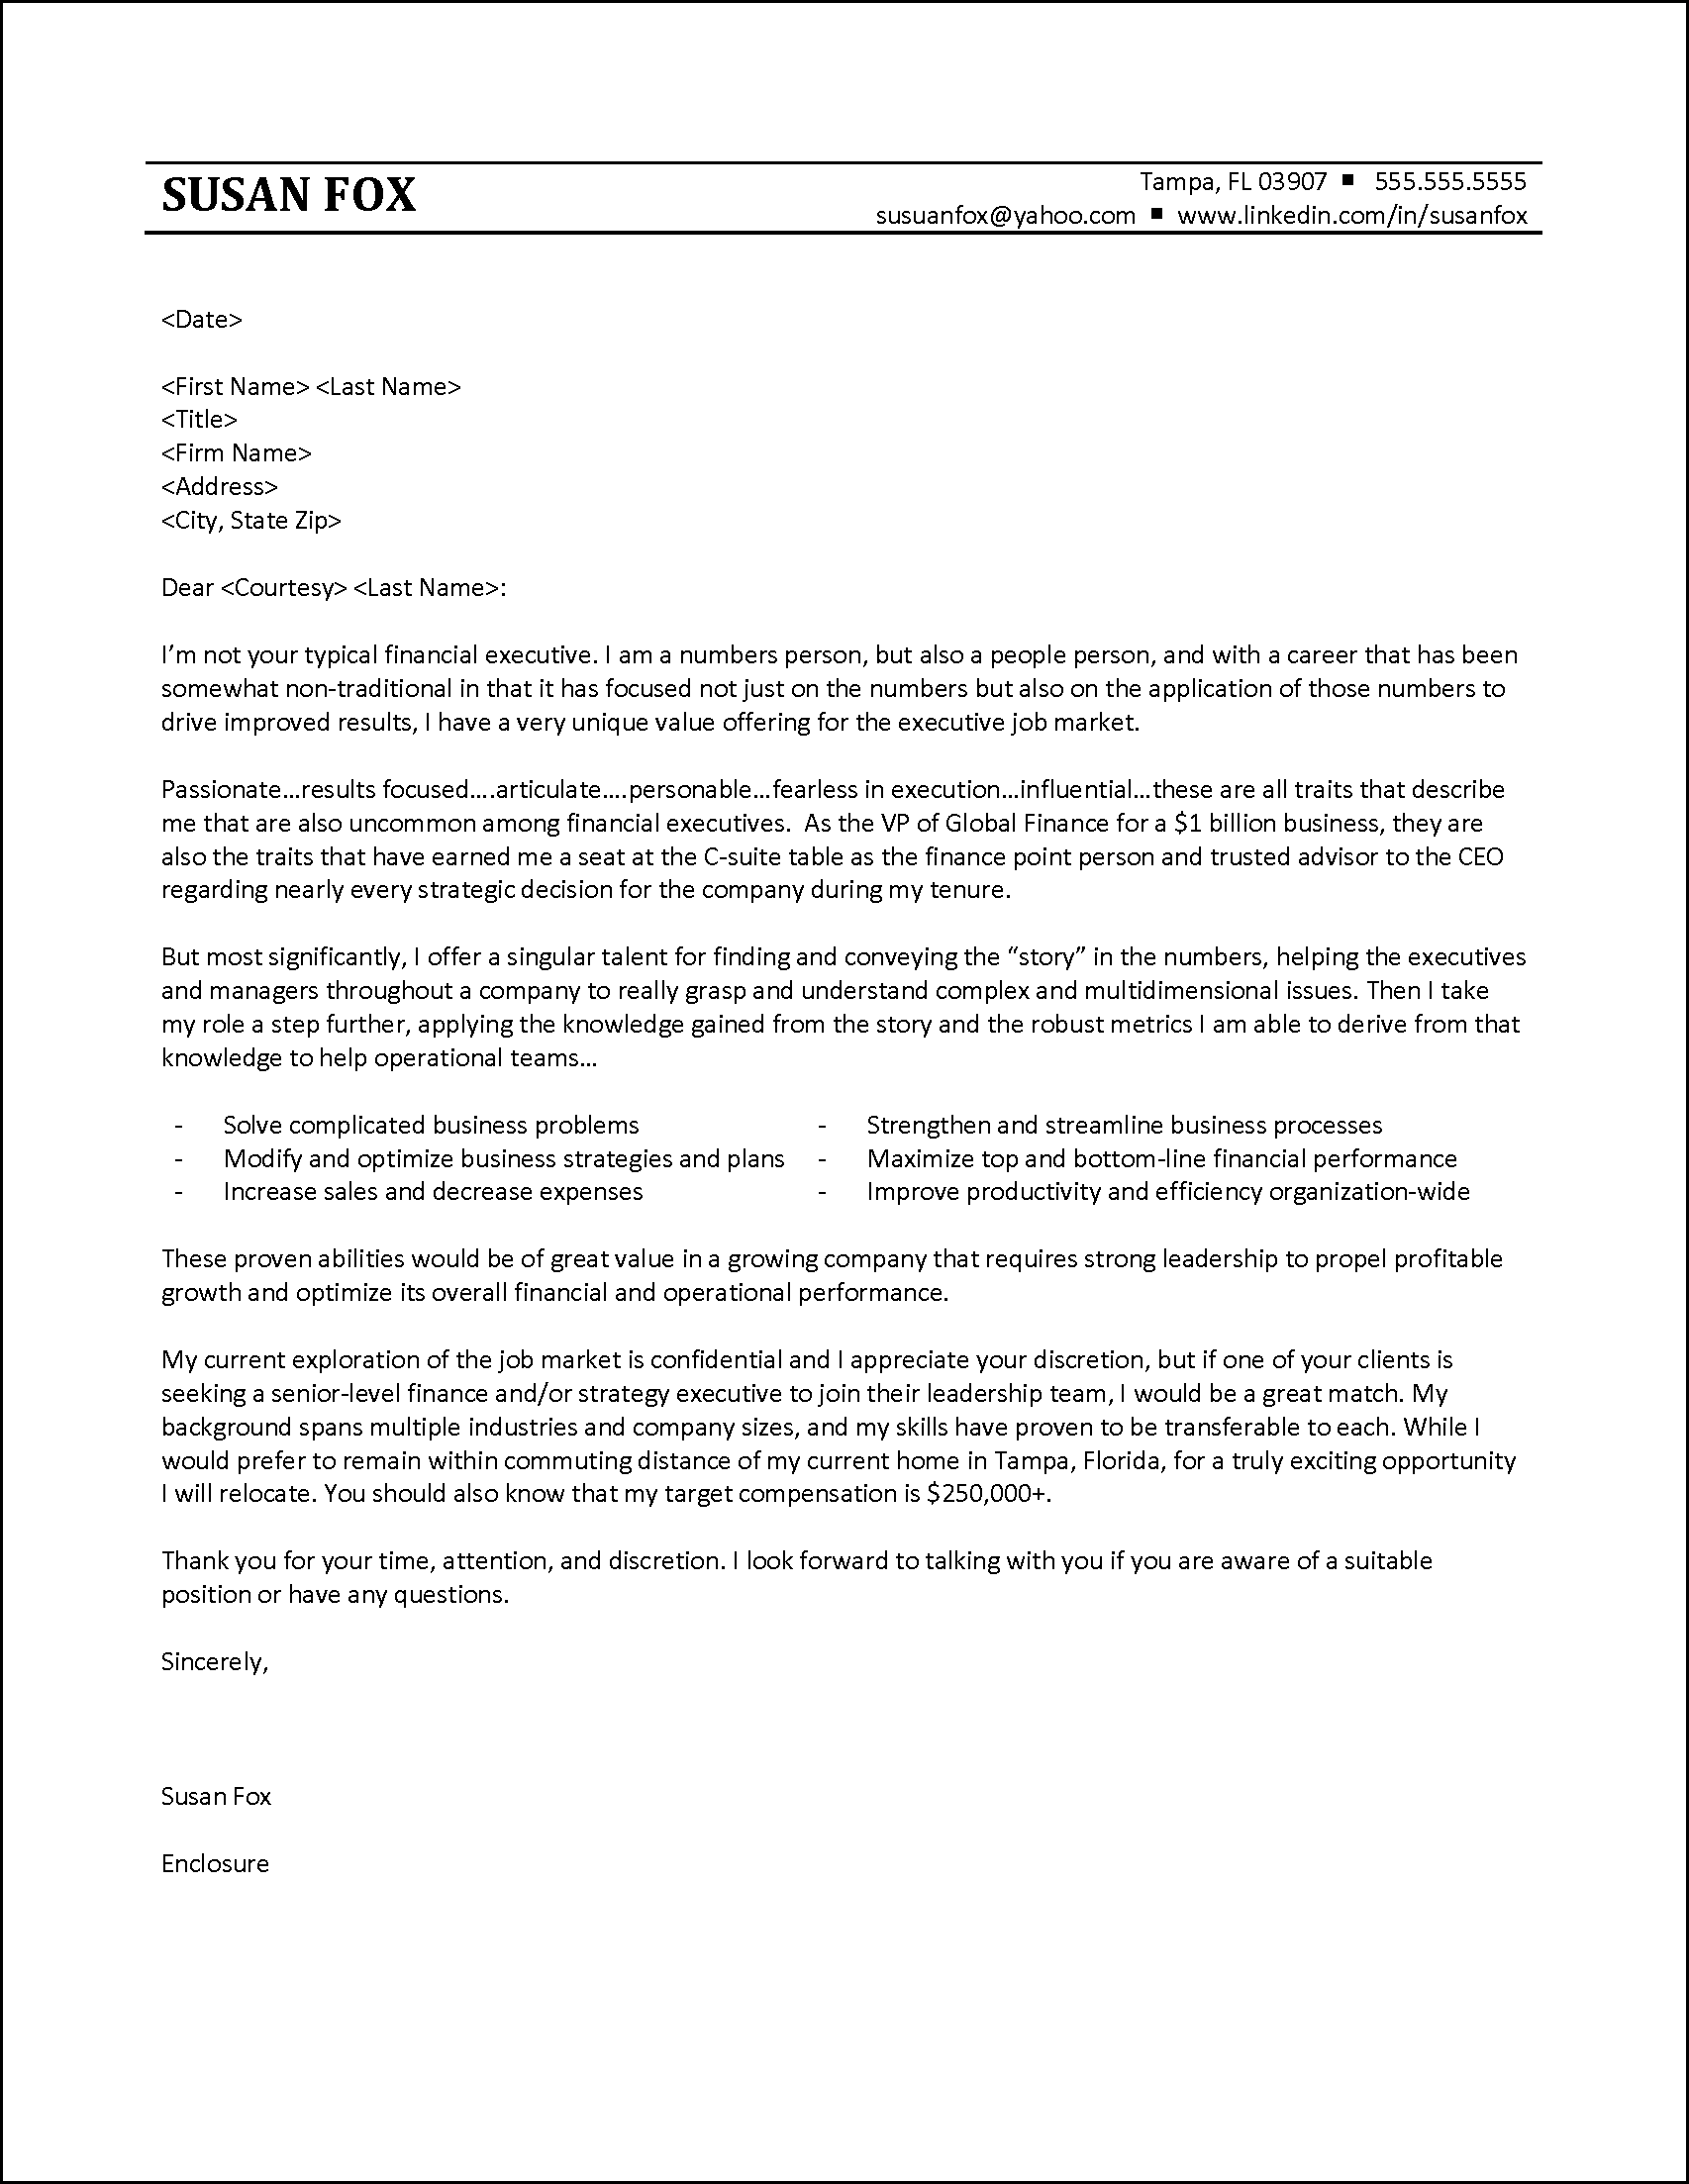 Example Cover Letter to Executive Recruiter | Resume Examples ...